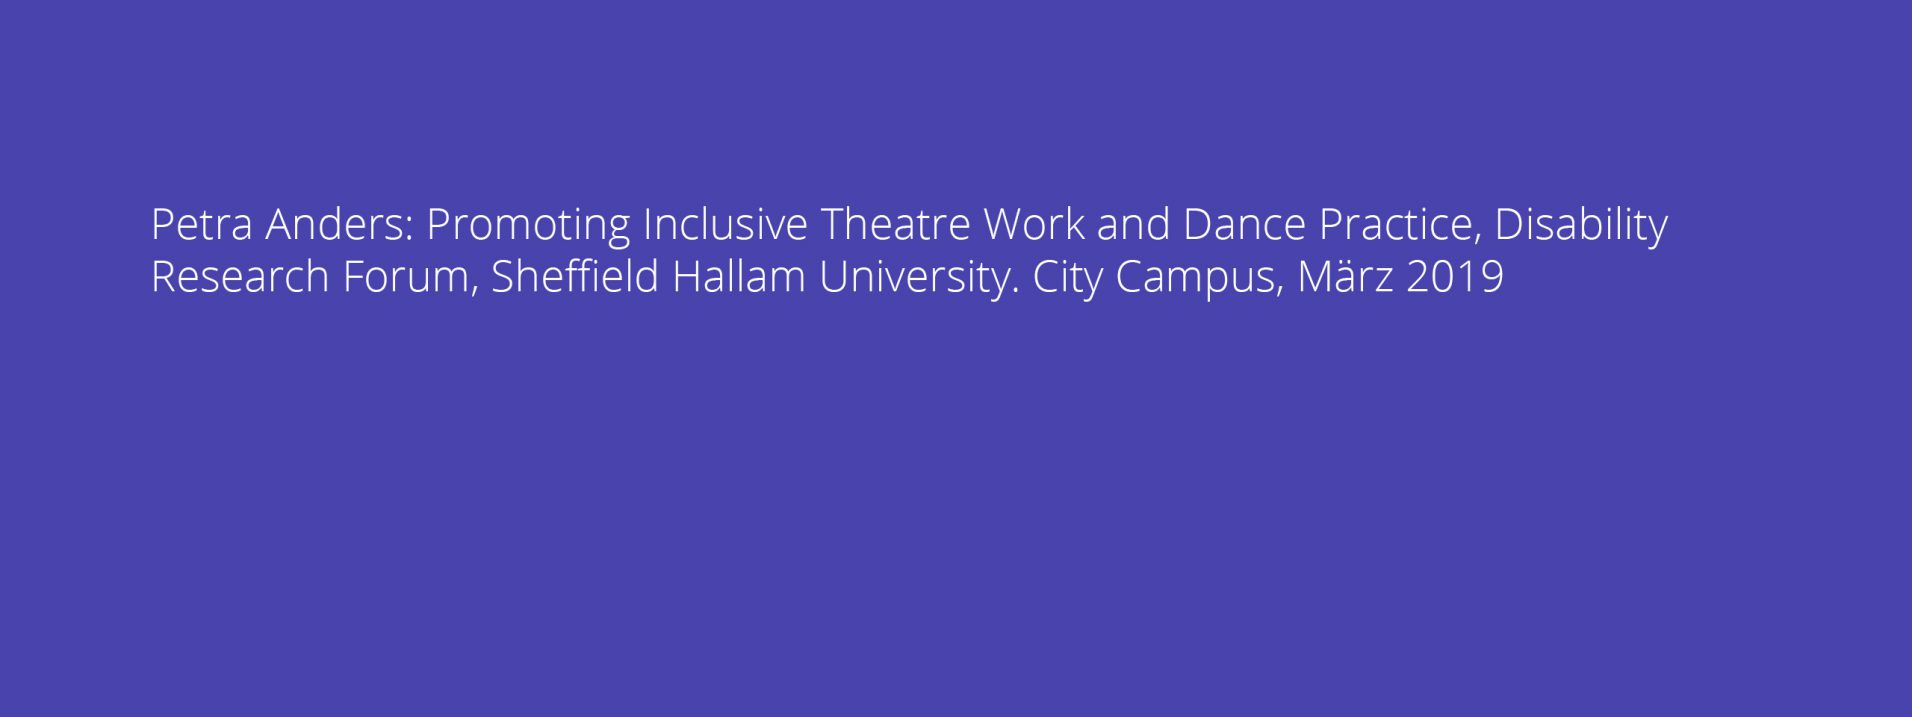 Petra Anders: Promoting Inclusive Theatre Work and Dance Practice, Disability Research Forum, Sheffield Hallam University. City Campus, März 2019